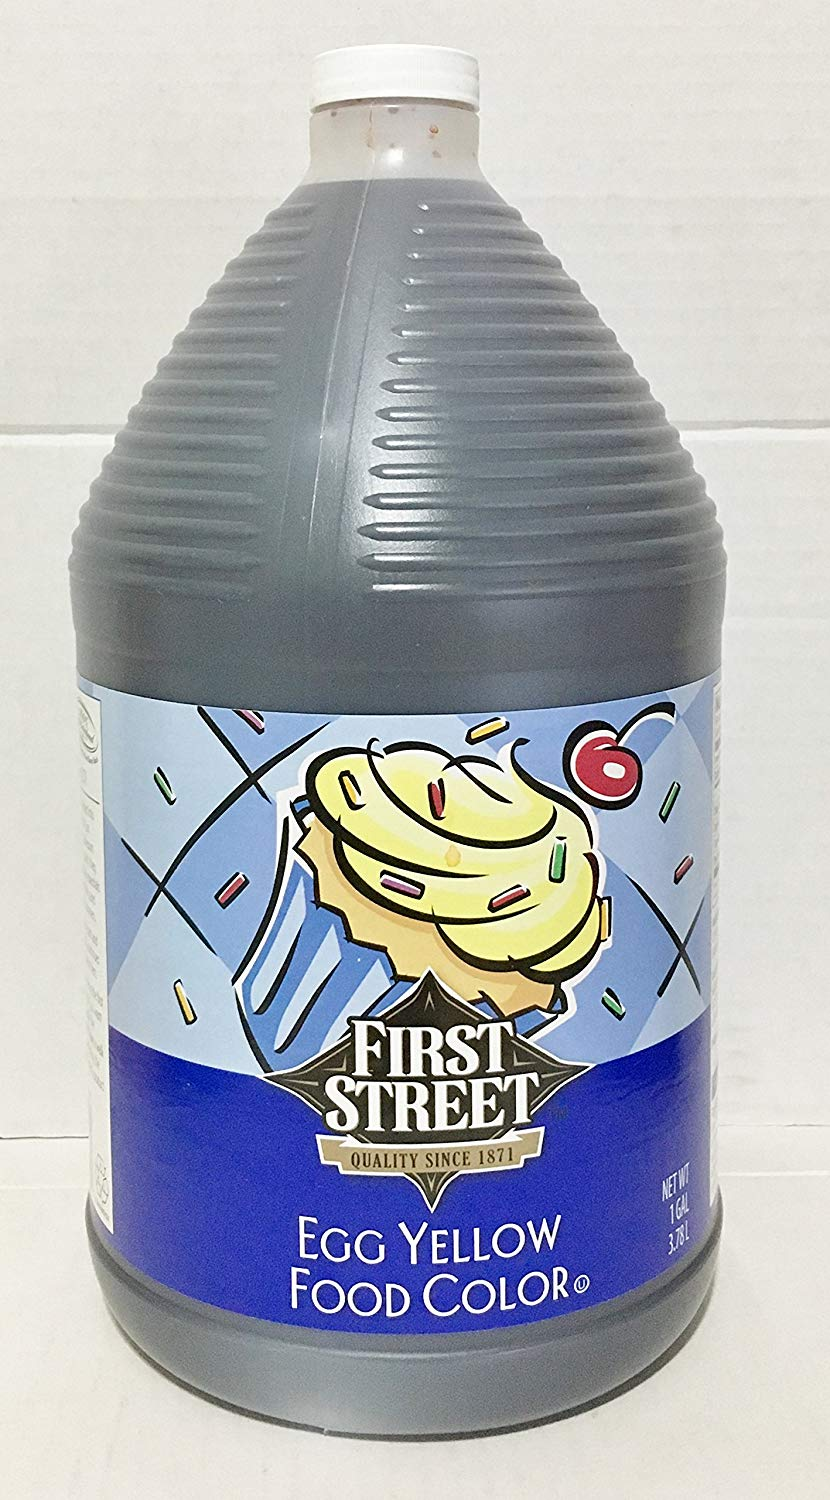 First Street 1 Gallon Egg Yellow Food Color Easter Egg Dye Brand (3.78 Liter Total)